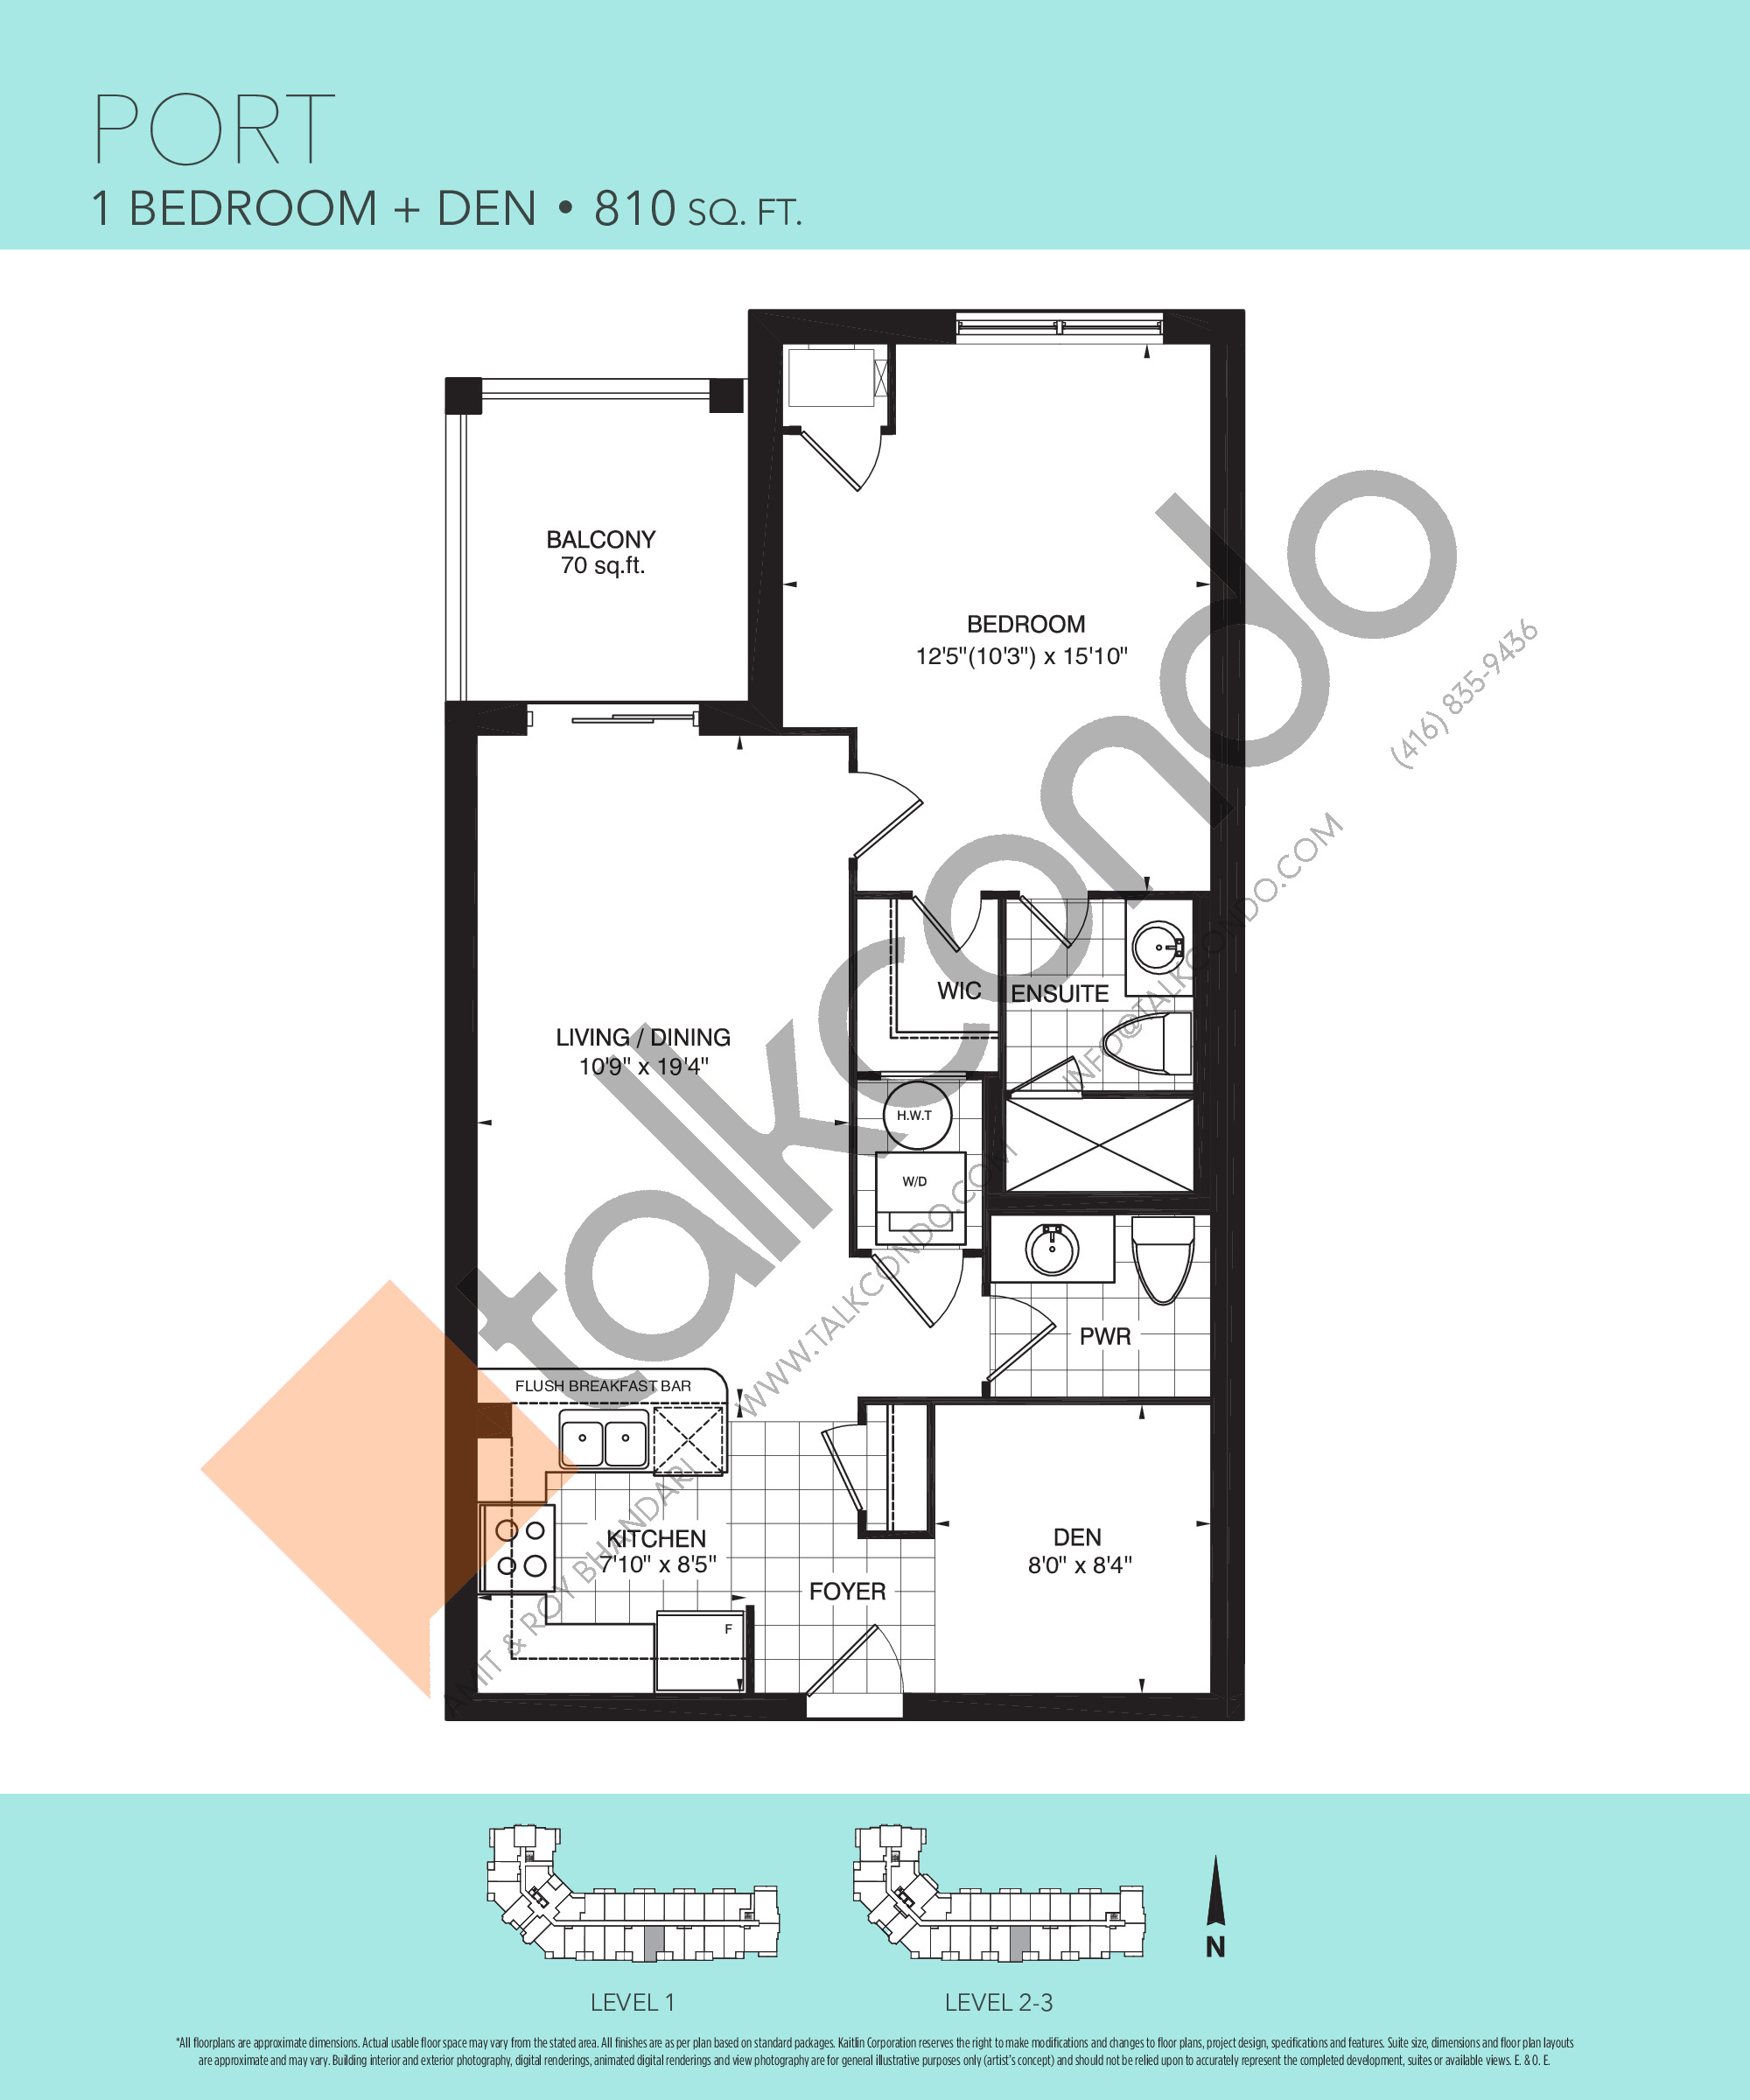 Port Floor Plan at Harbourview Grand Condos - 810 sq.ft